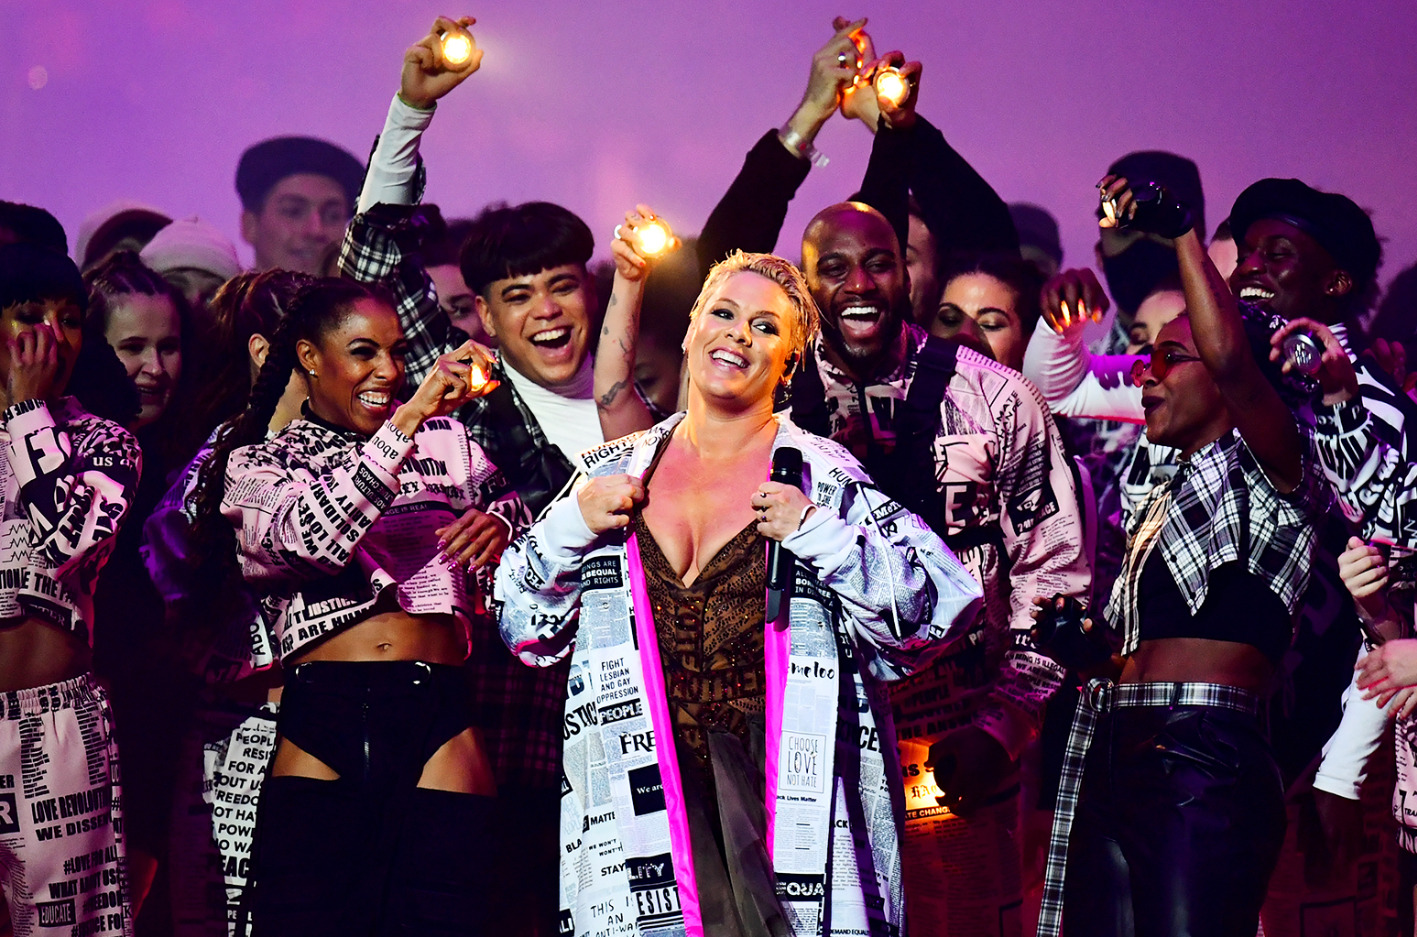 Screenshot_2019-02-21 pink-live-brit-awards-2019-billboard-1548 jpg (Imagen JPEG, 1548 × 1024 píxeles) - Escalado (73 %)